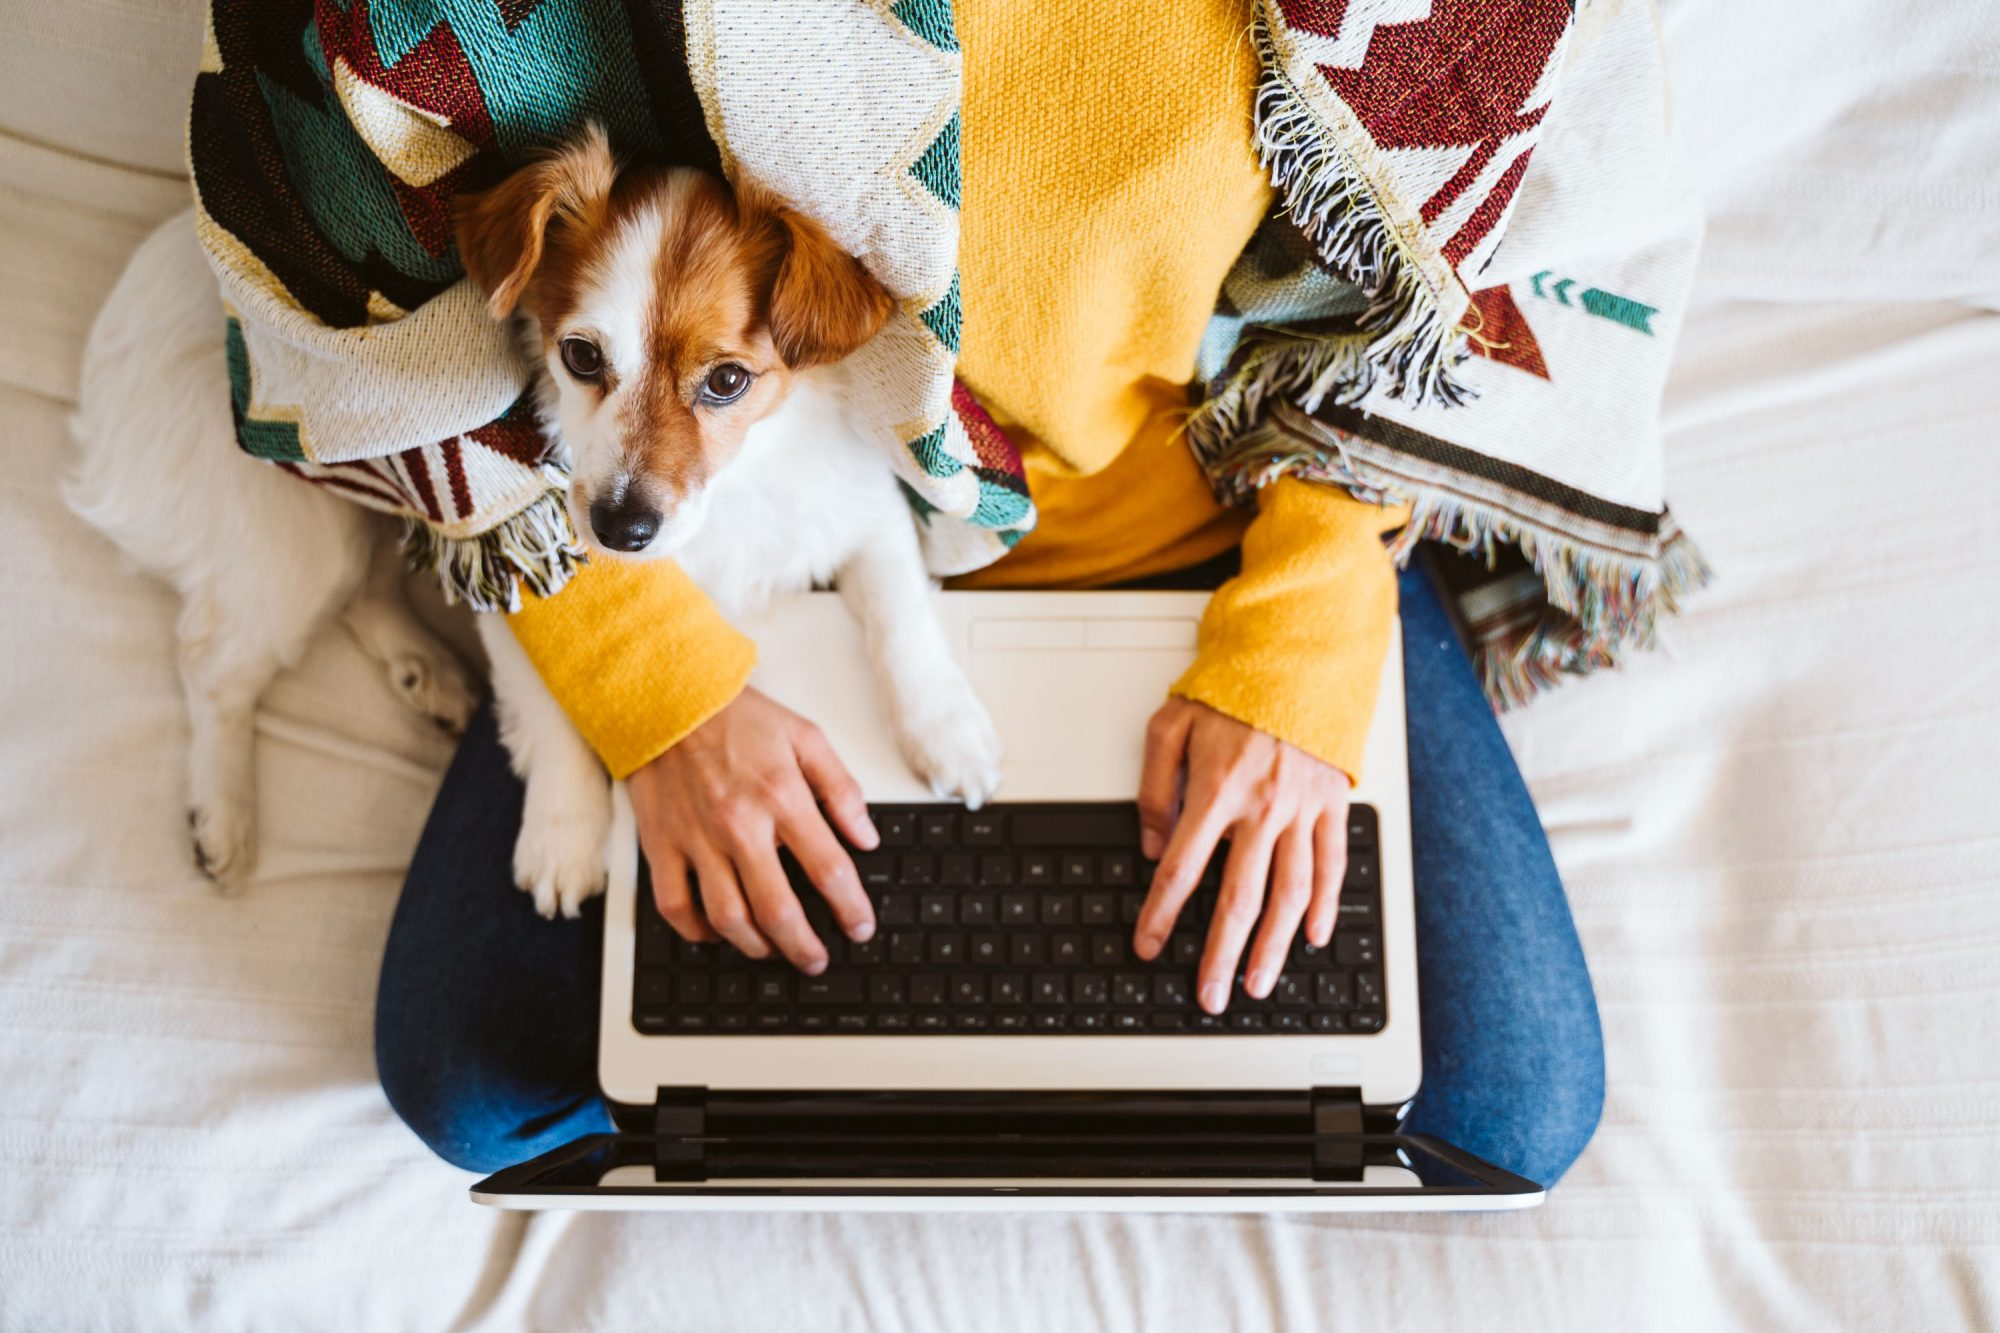 A woman and her dog check out photos on a custom veterinary website.